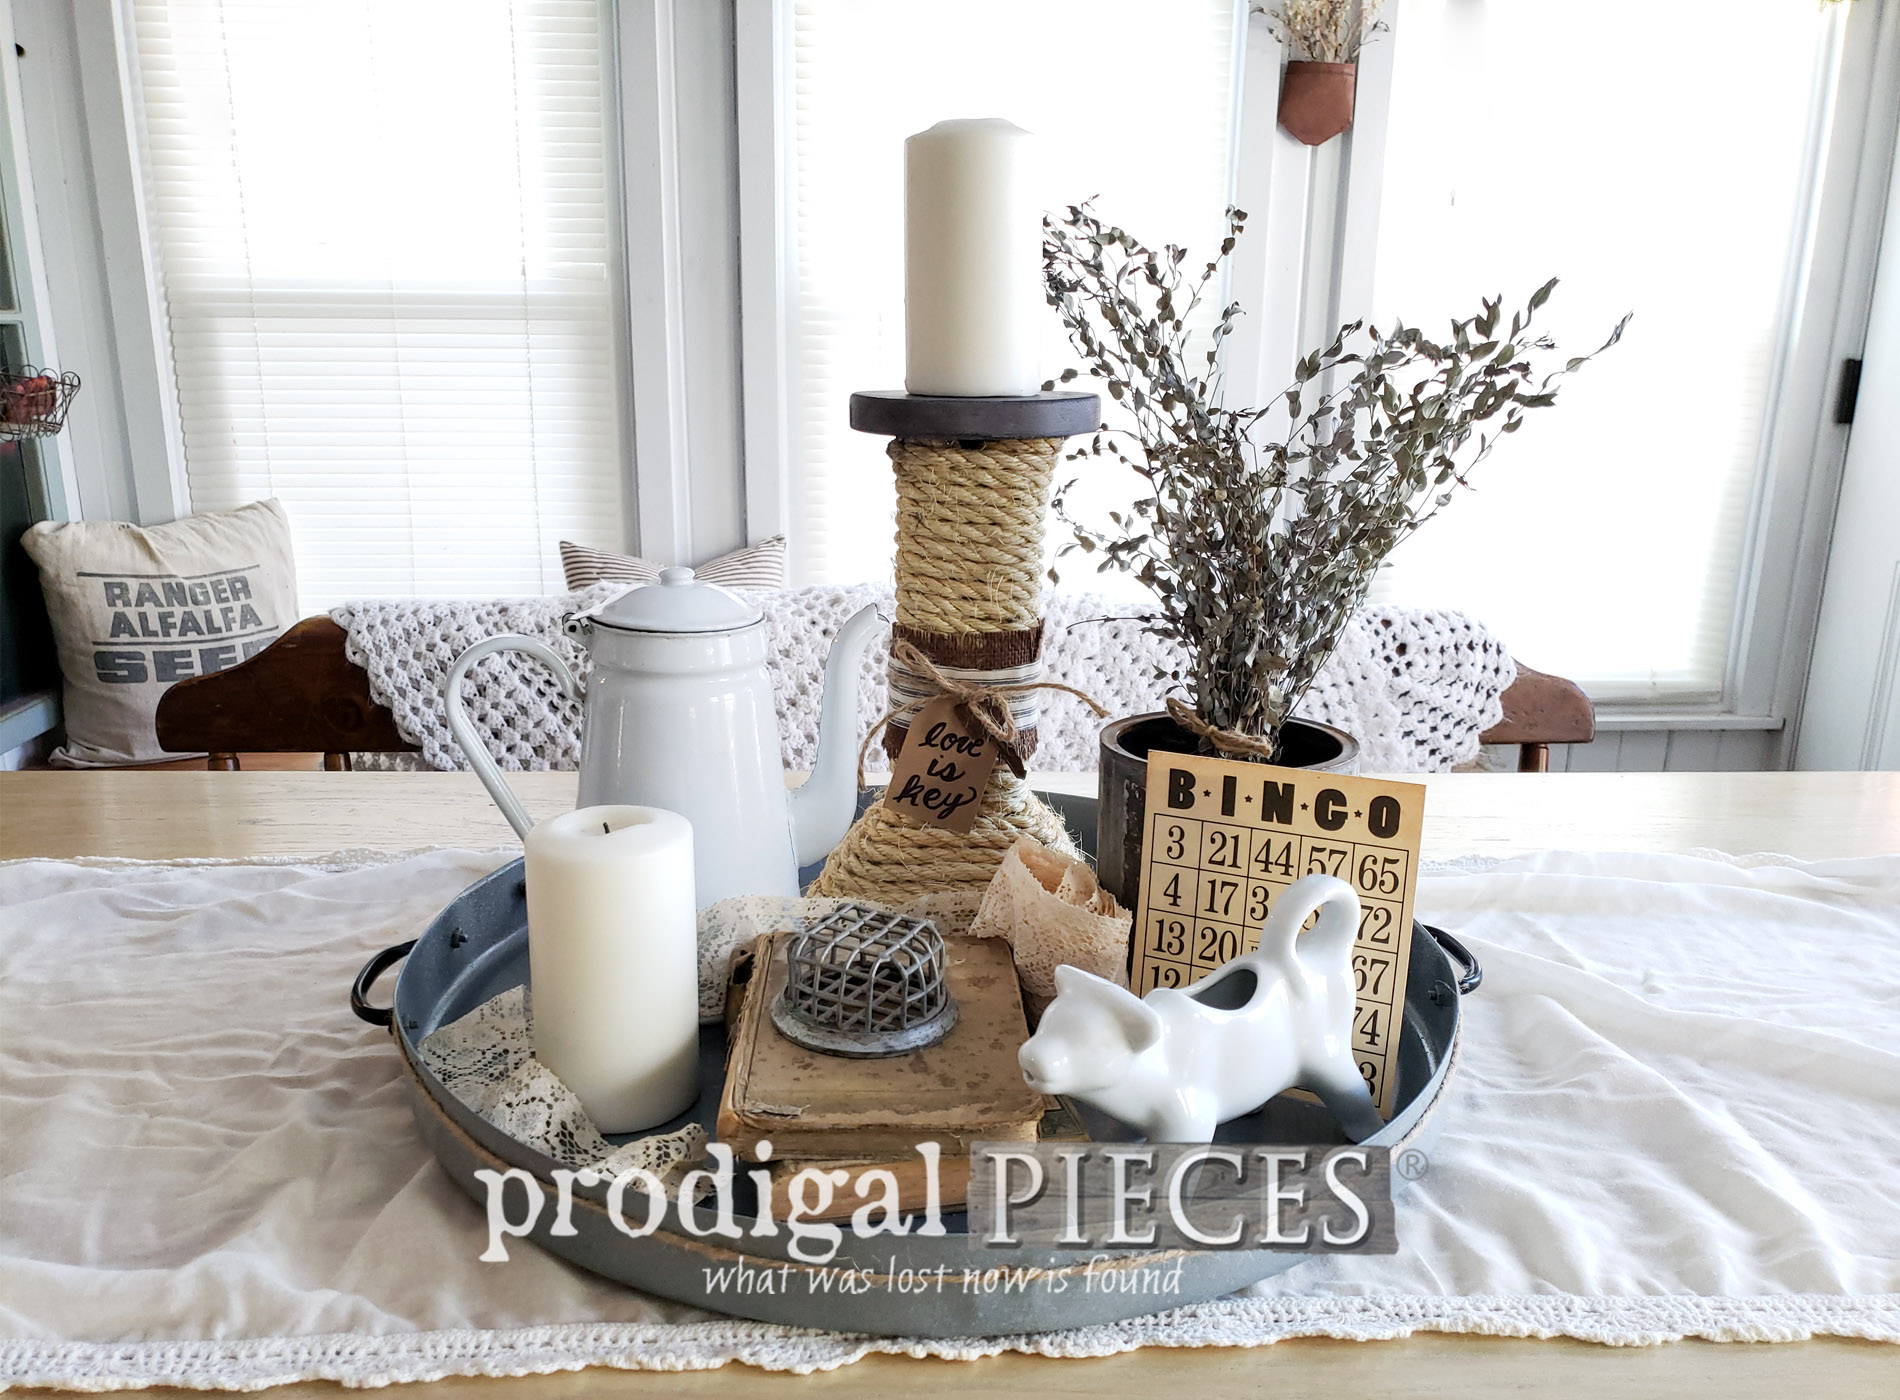 Featured Upcycled Farmhouse Tray and Candle Holder made from a curbside table   Come see the DIY video tutorial at Larissa of Prodigal Pieces   prodigalpieces.com